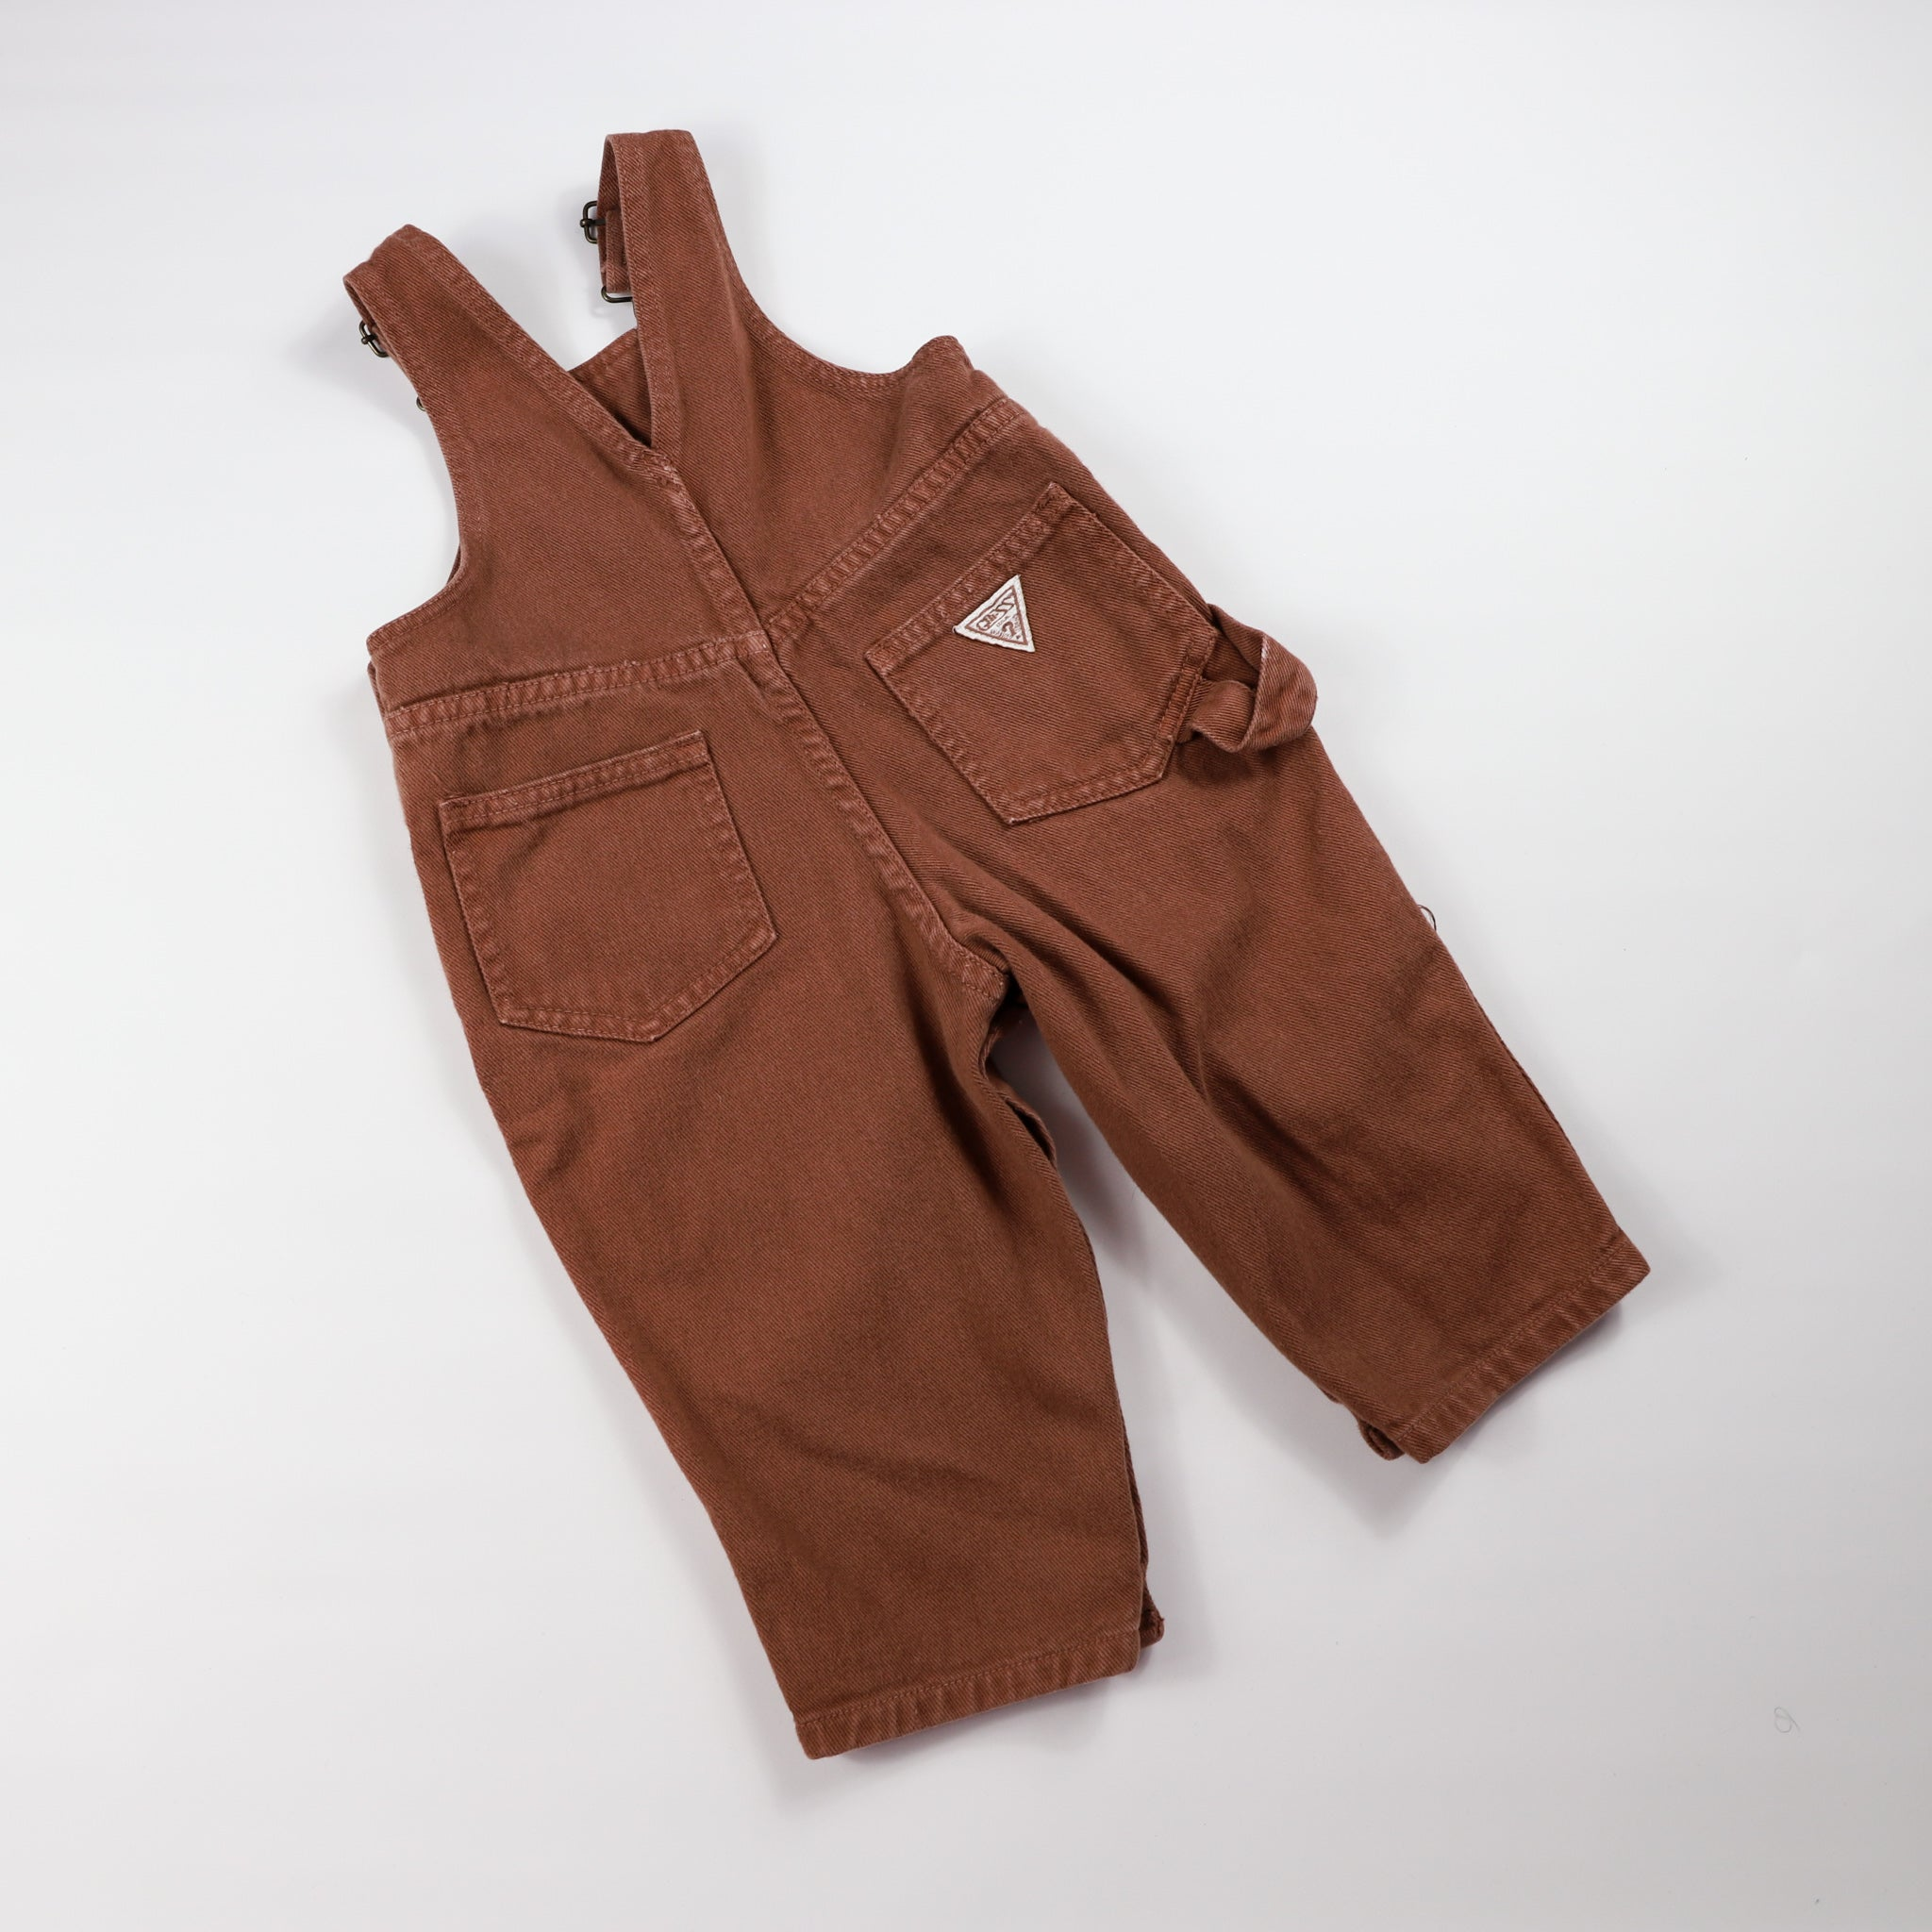 Vintage Guess Brown Overalls Size 24 Months